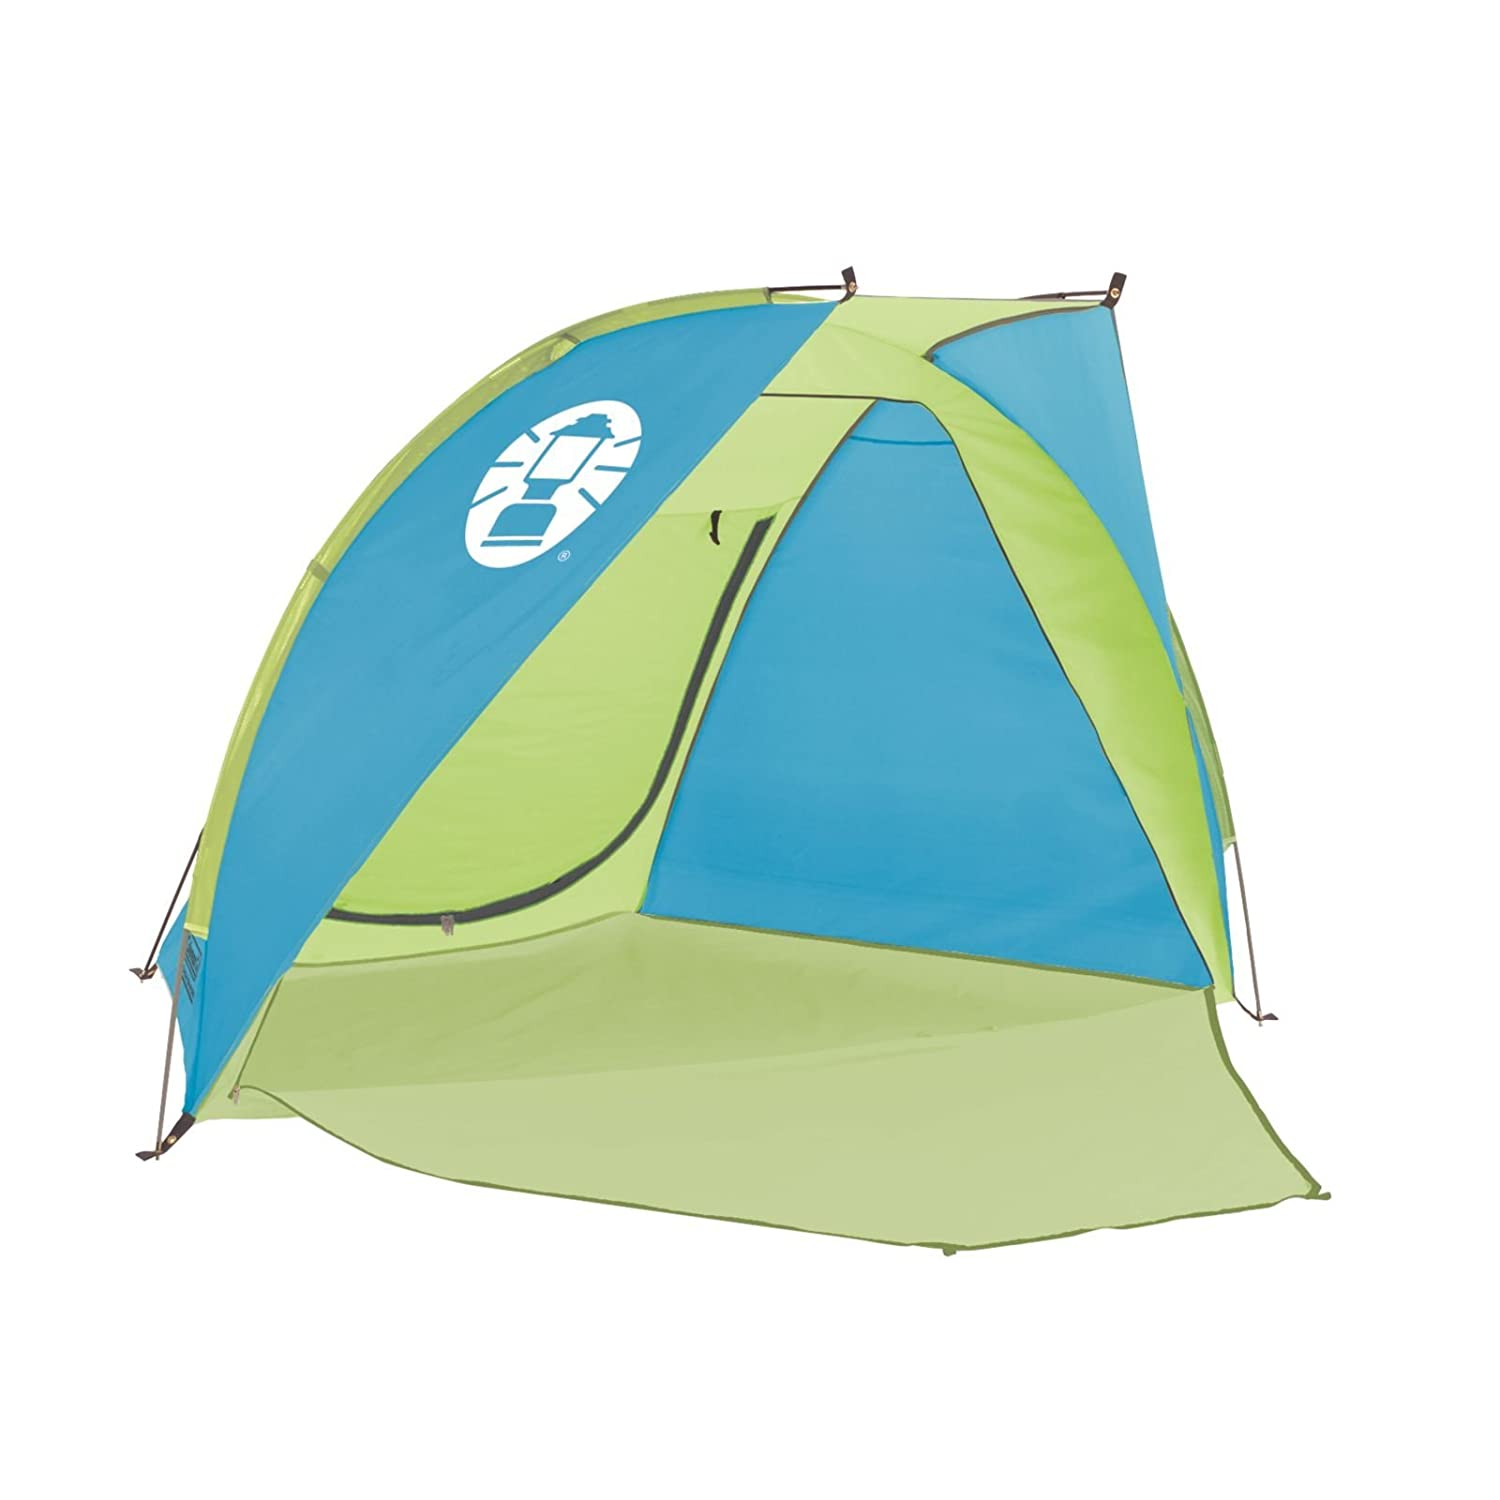 Amazon.com  Coleman Compact Shade Shelter Blue/Lime  Sports u0026 Outdoors  sc 1 st  Amazon.com & Amazon.com : Coleman Compact Shade Shelter Blue/Lime : Sports ...